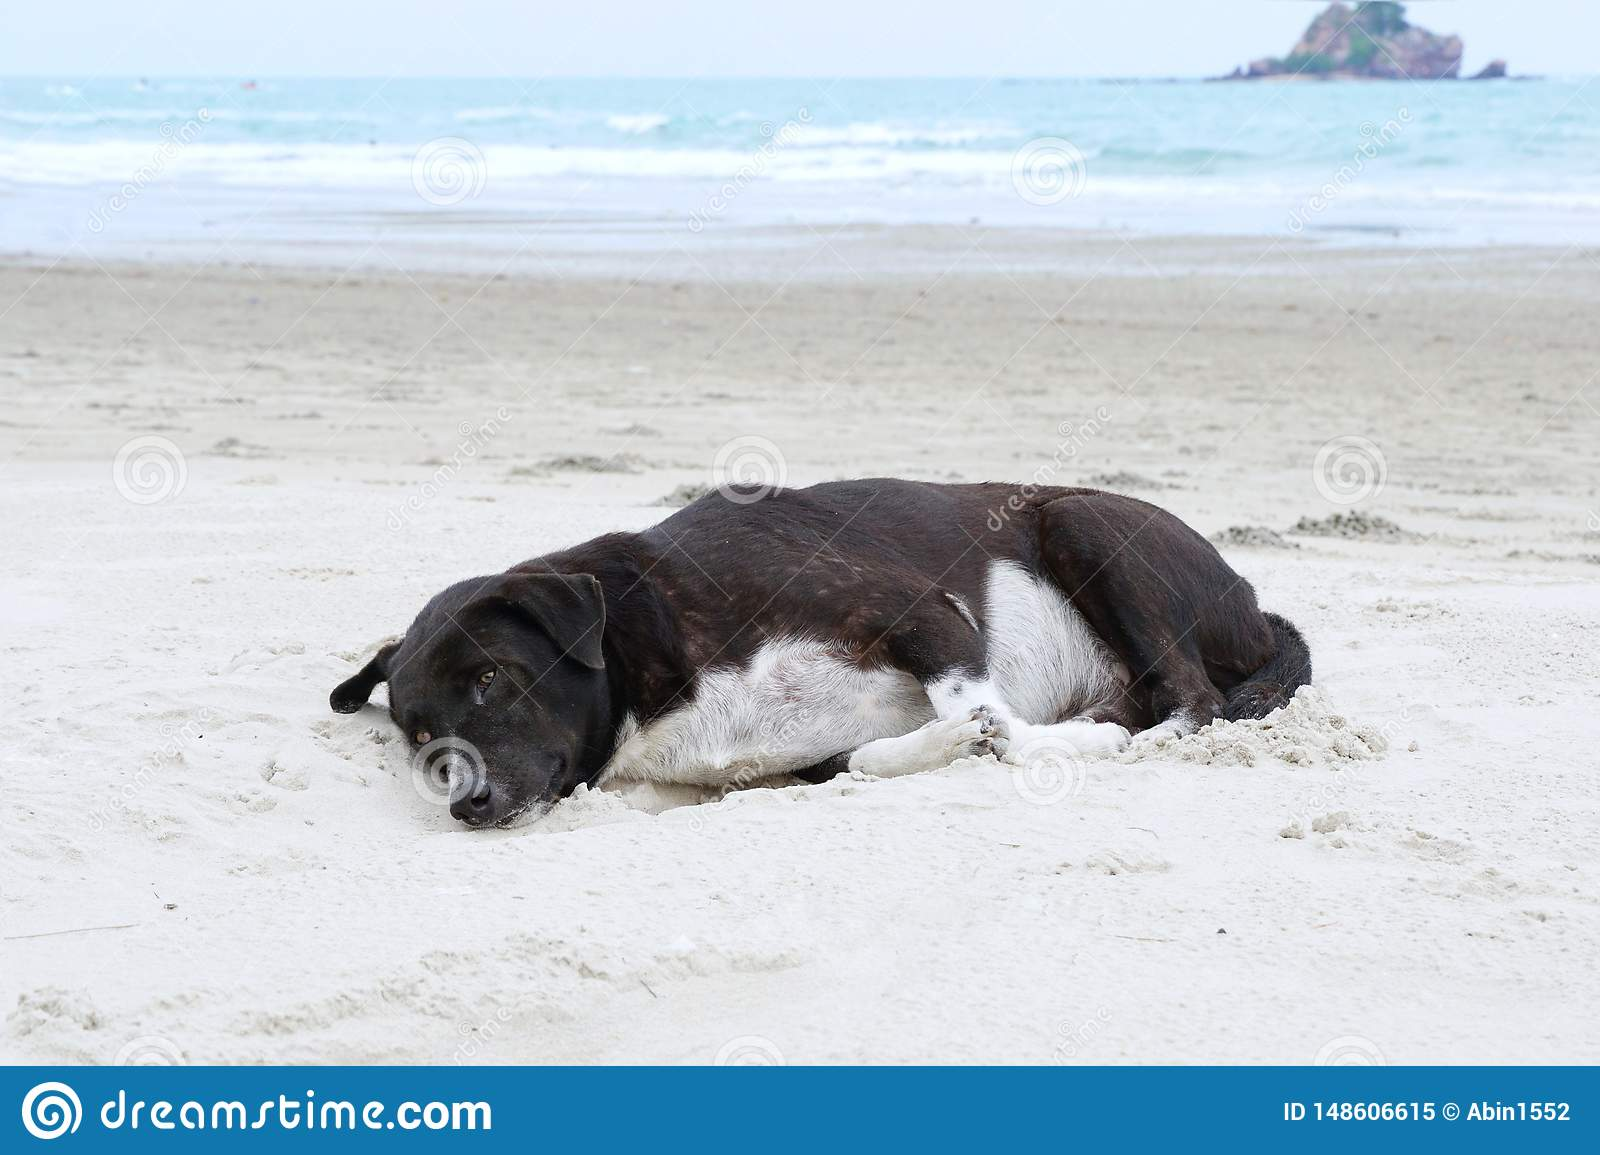 Relaxed dog, Black mixed white dog looking at camera on the sand beach with sea and blue sky as a background